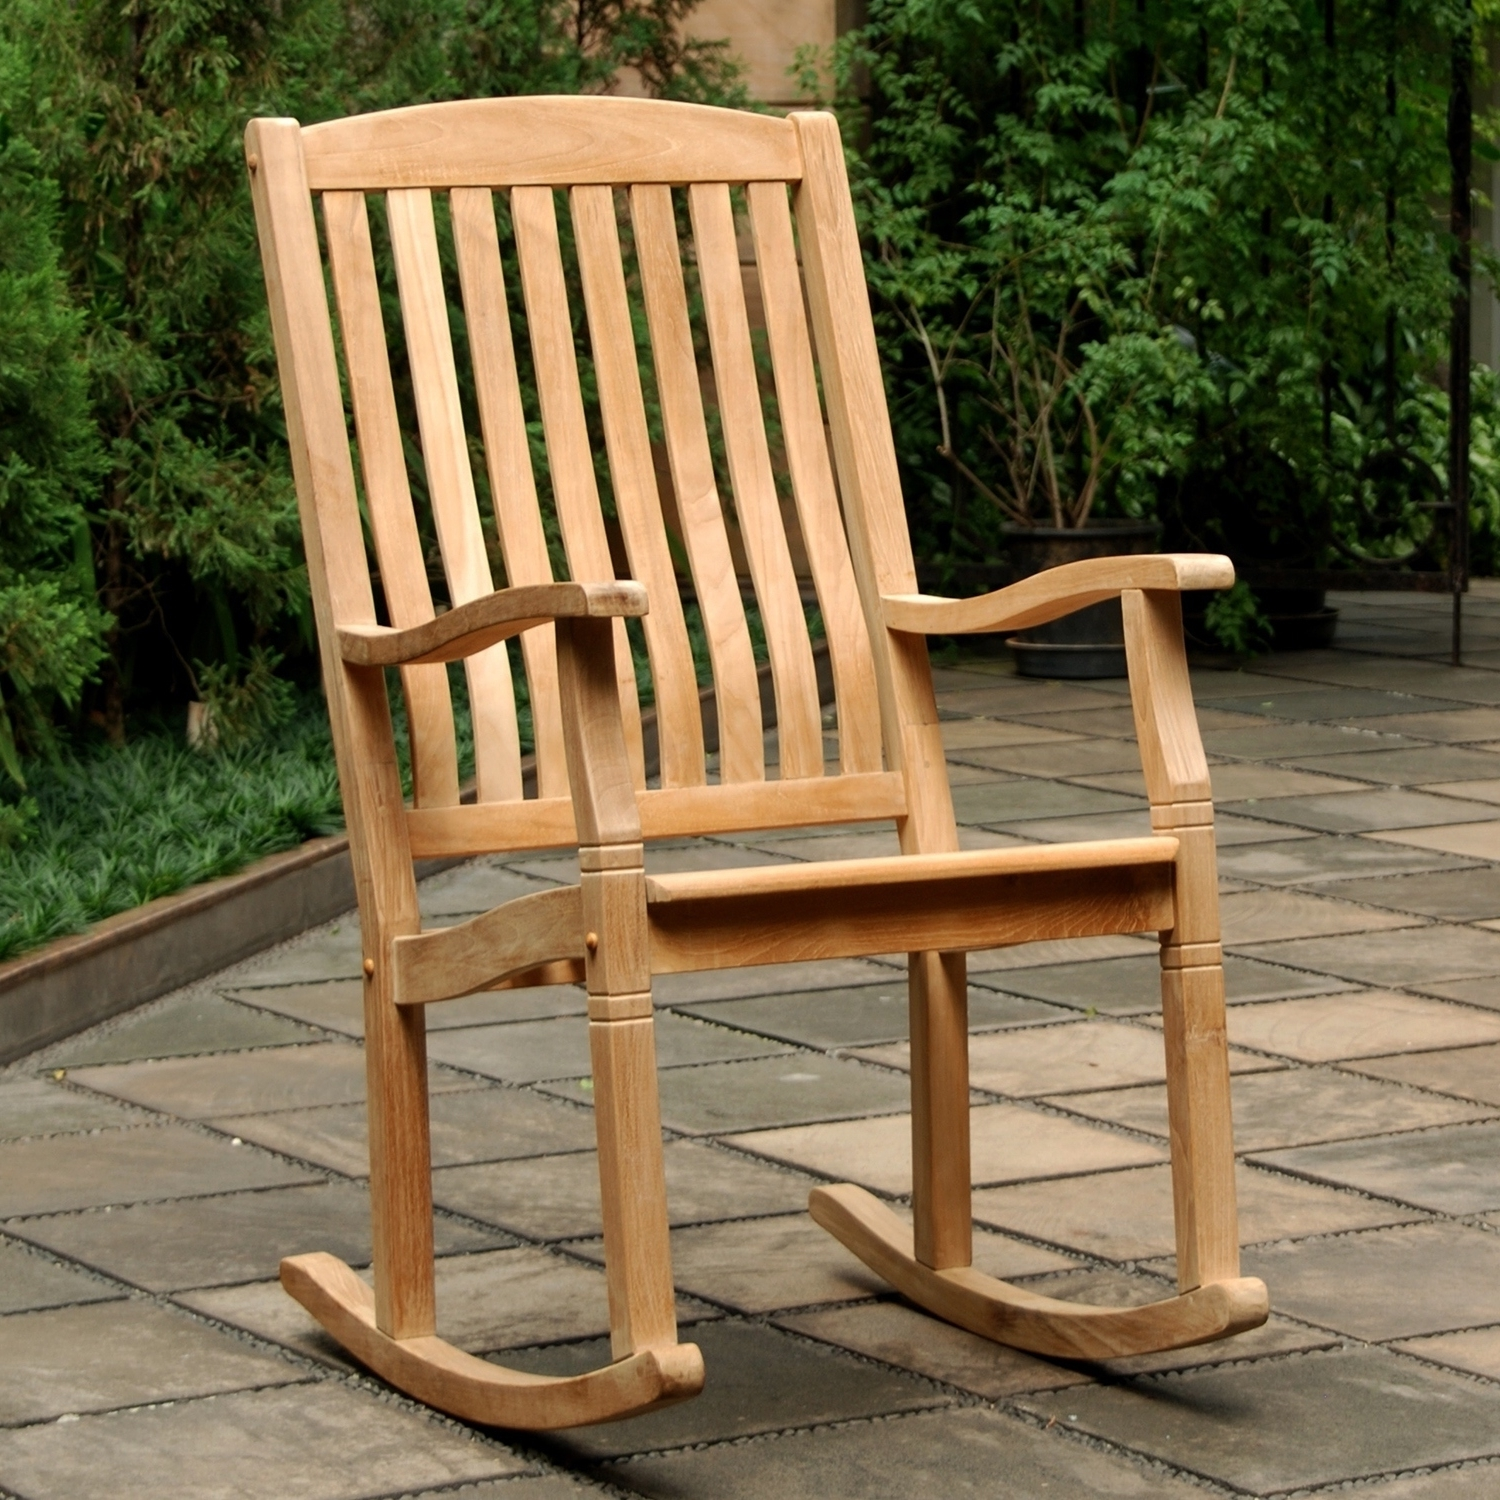 Most Popular Teak Patio Rocking Chairs Pertaining To Teak Patio Furniture (View 15 of 15)